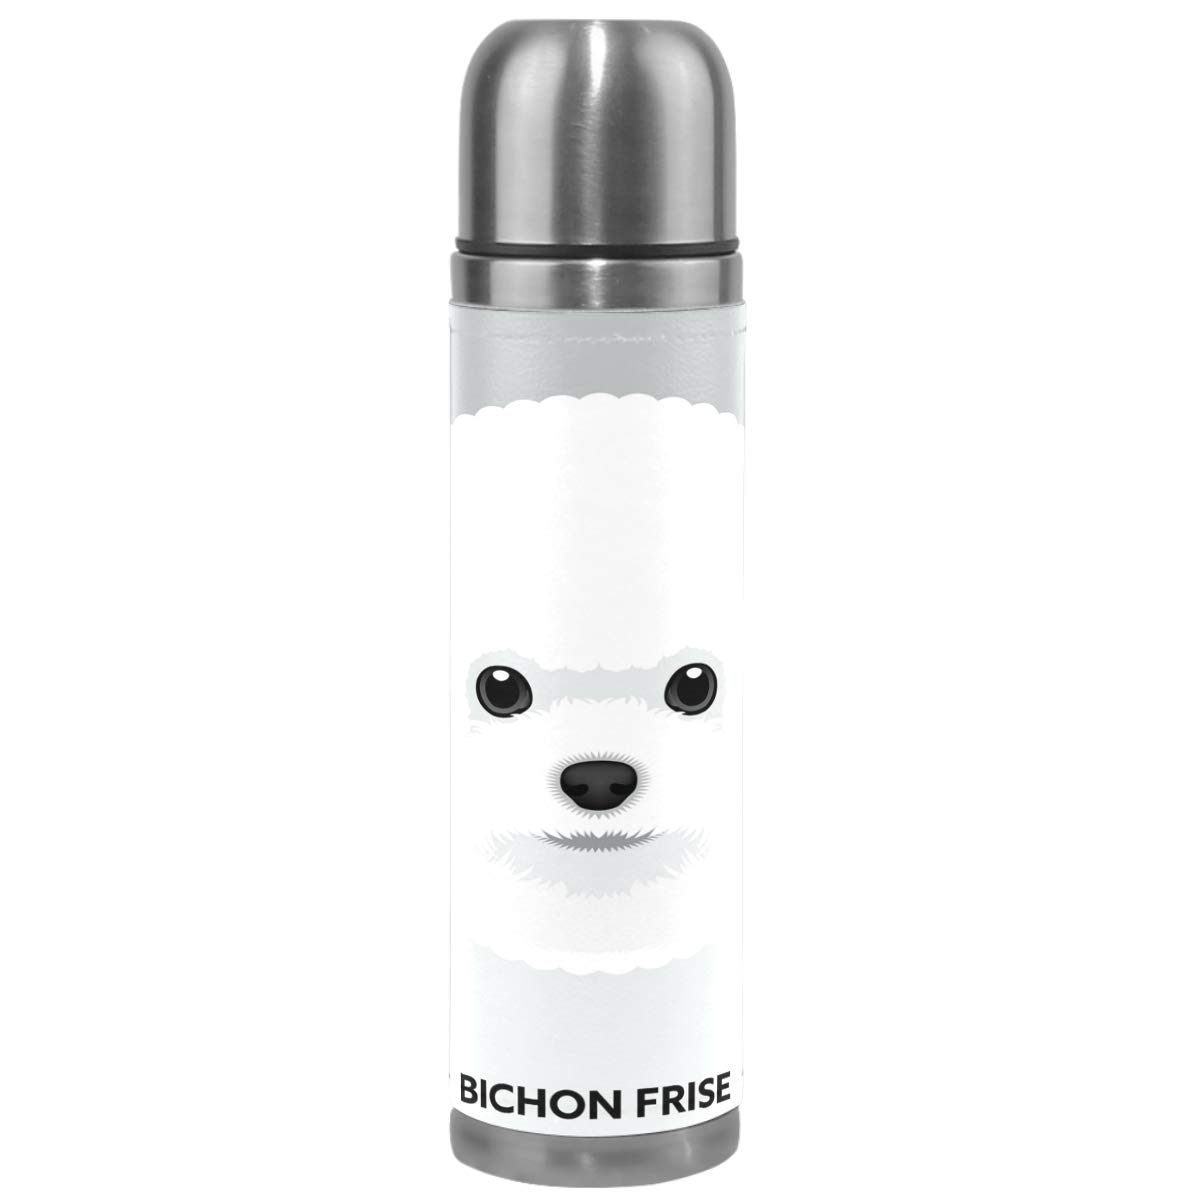 Wamika Cute Dog Pattern Vacuum Insulated Stainless Steel Water Bottle, Bichon Frise Puppy Funny Pets Animals Sports Coffee Travel Mug Thermos Cup Genuine Leather Cover Double Walled BPA Free 17 OZ